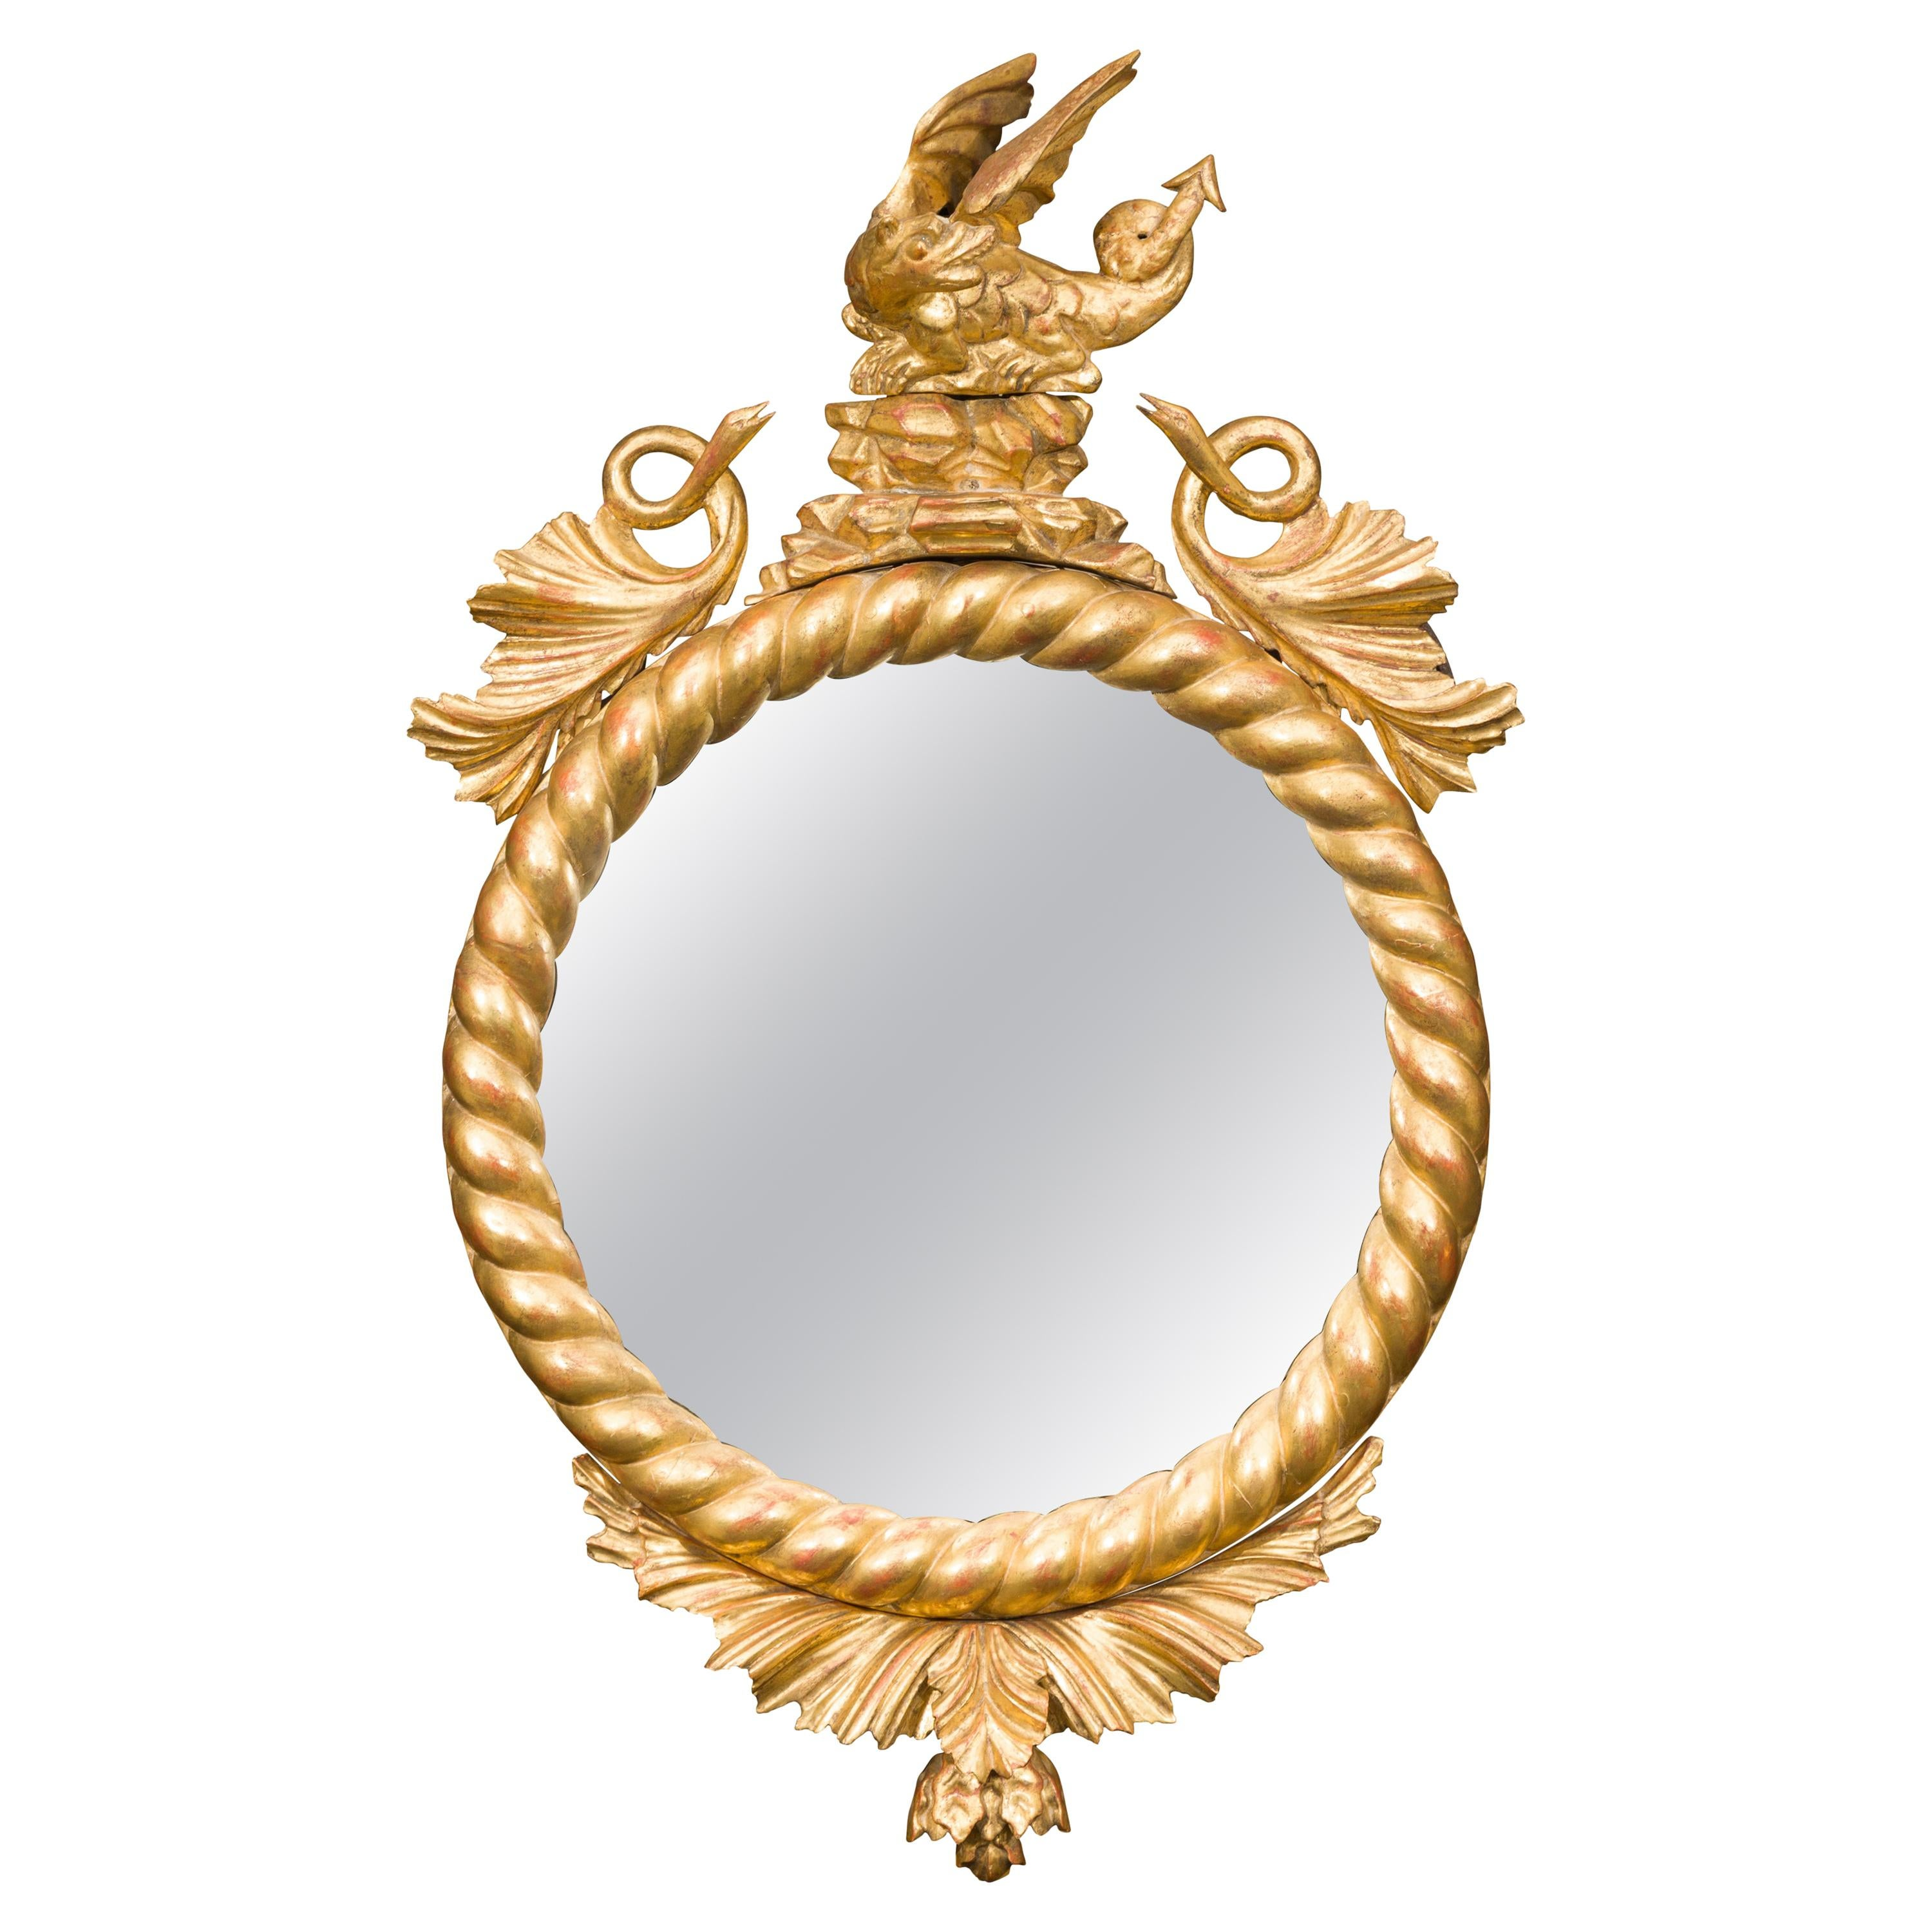 English Carved Giltwood Convex Mirror with Mythical Creatures, circa 1840